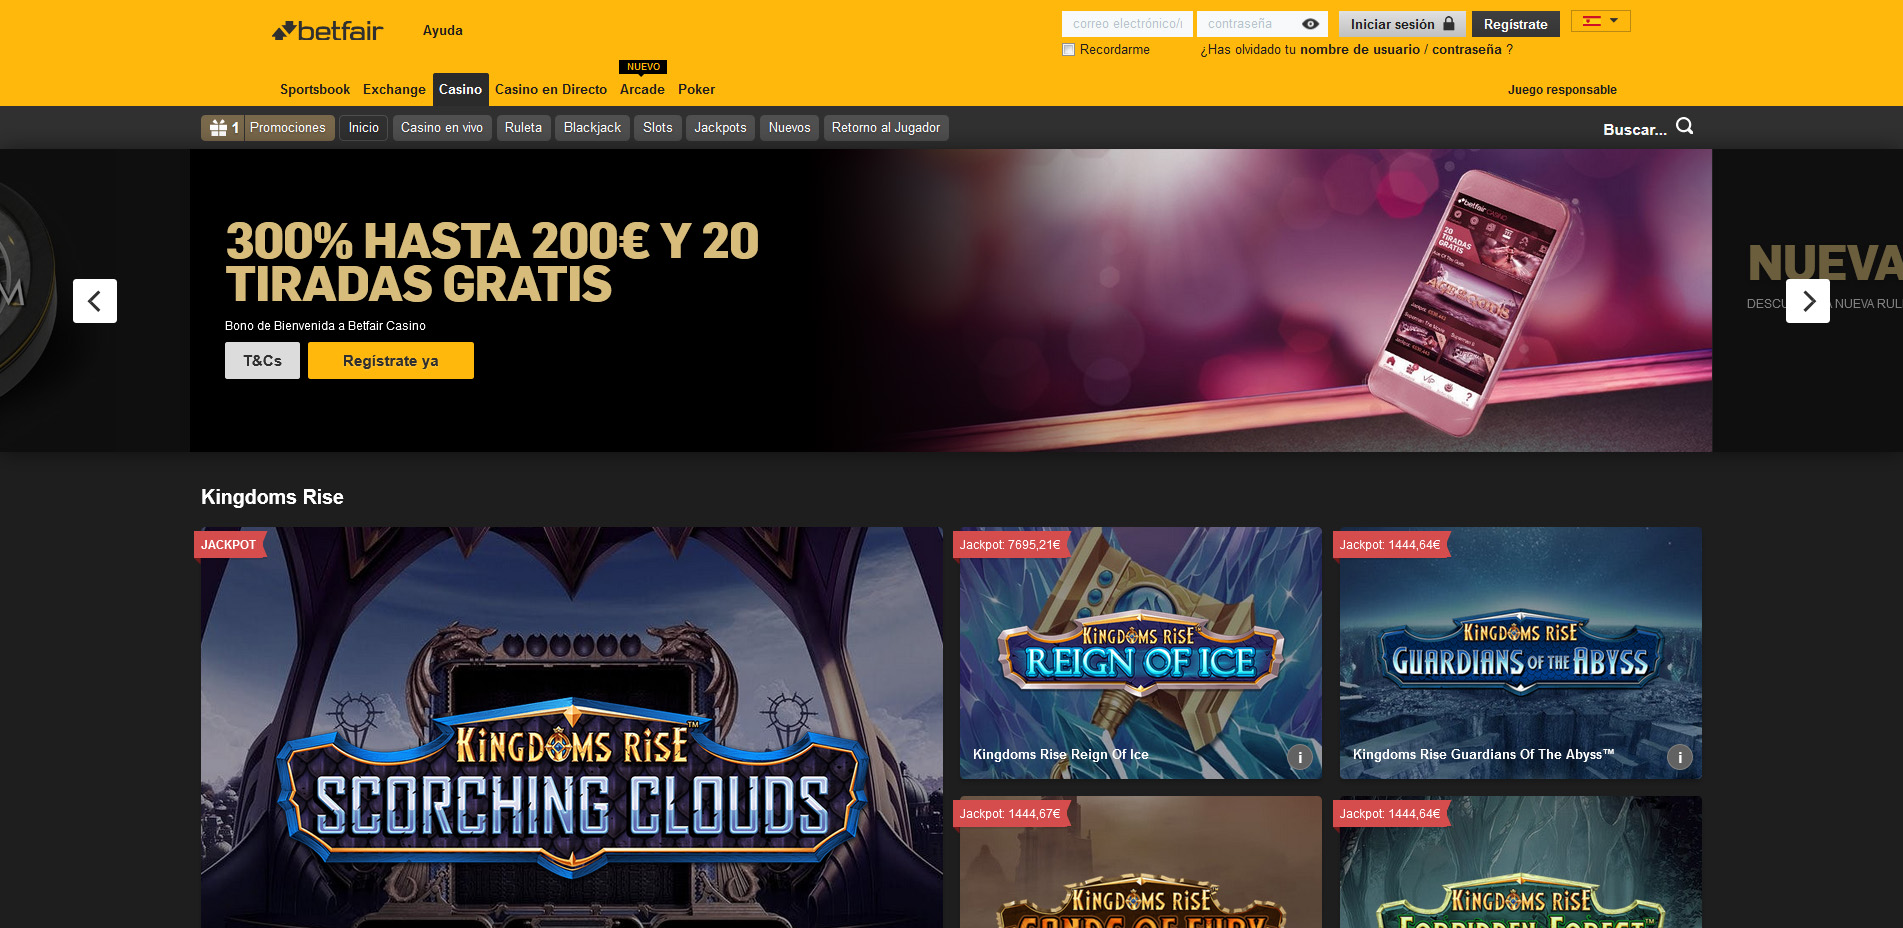 Betfair casino